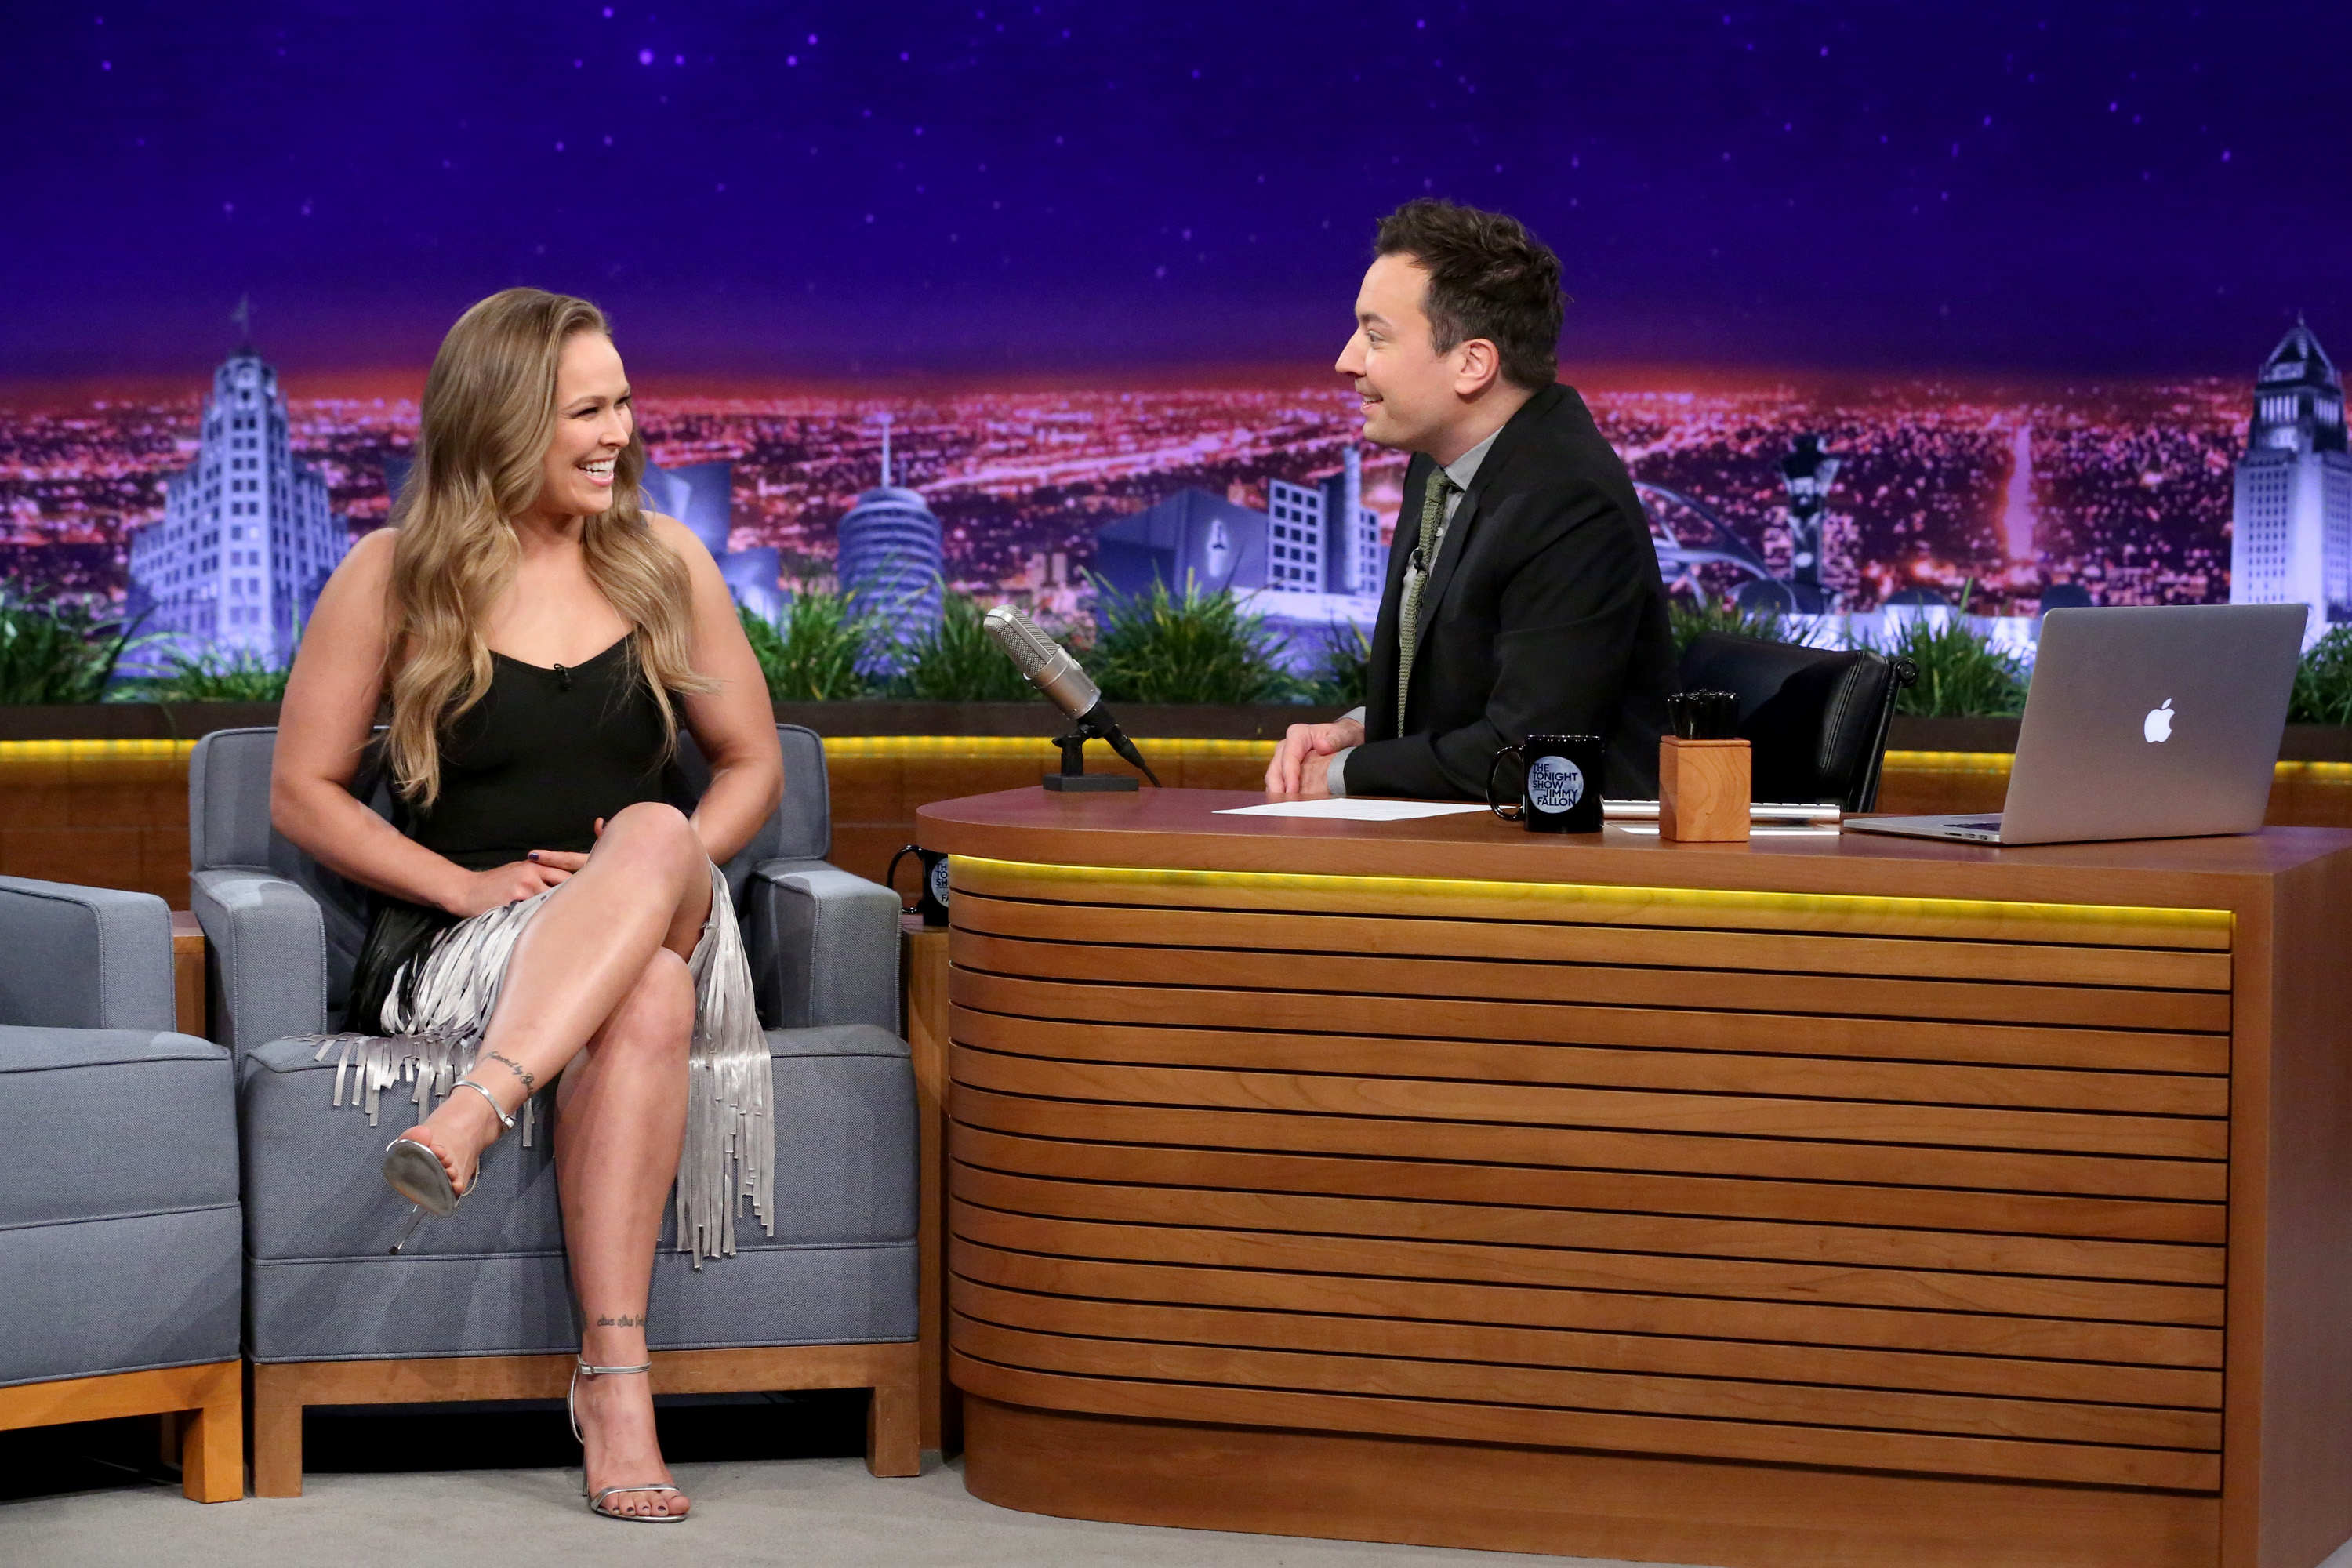 THE TONIGHT SHOW STARRING JIMMY FALLON -- Episode 0418 -- Pictured: (l-r) Mixed martial artist Ronda Rousey during an interview with host Jimmy Fallon on February 16, 2016 -- (